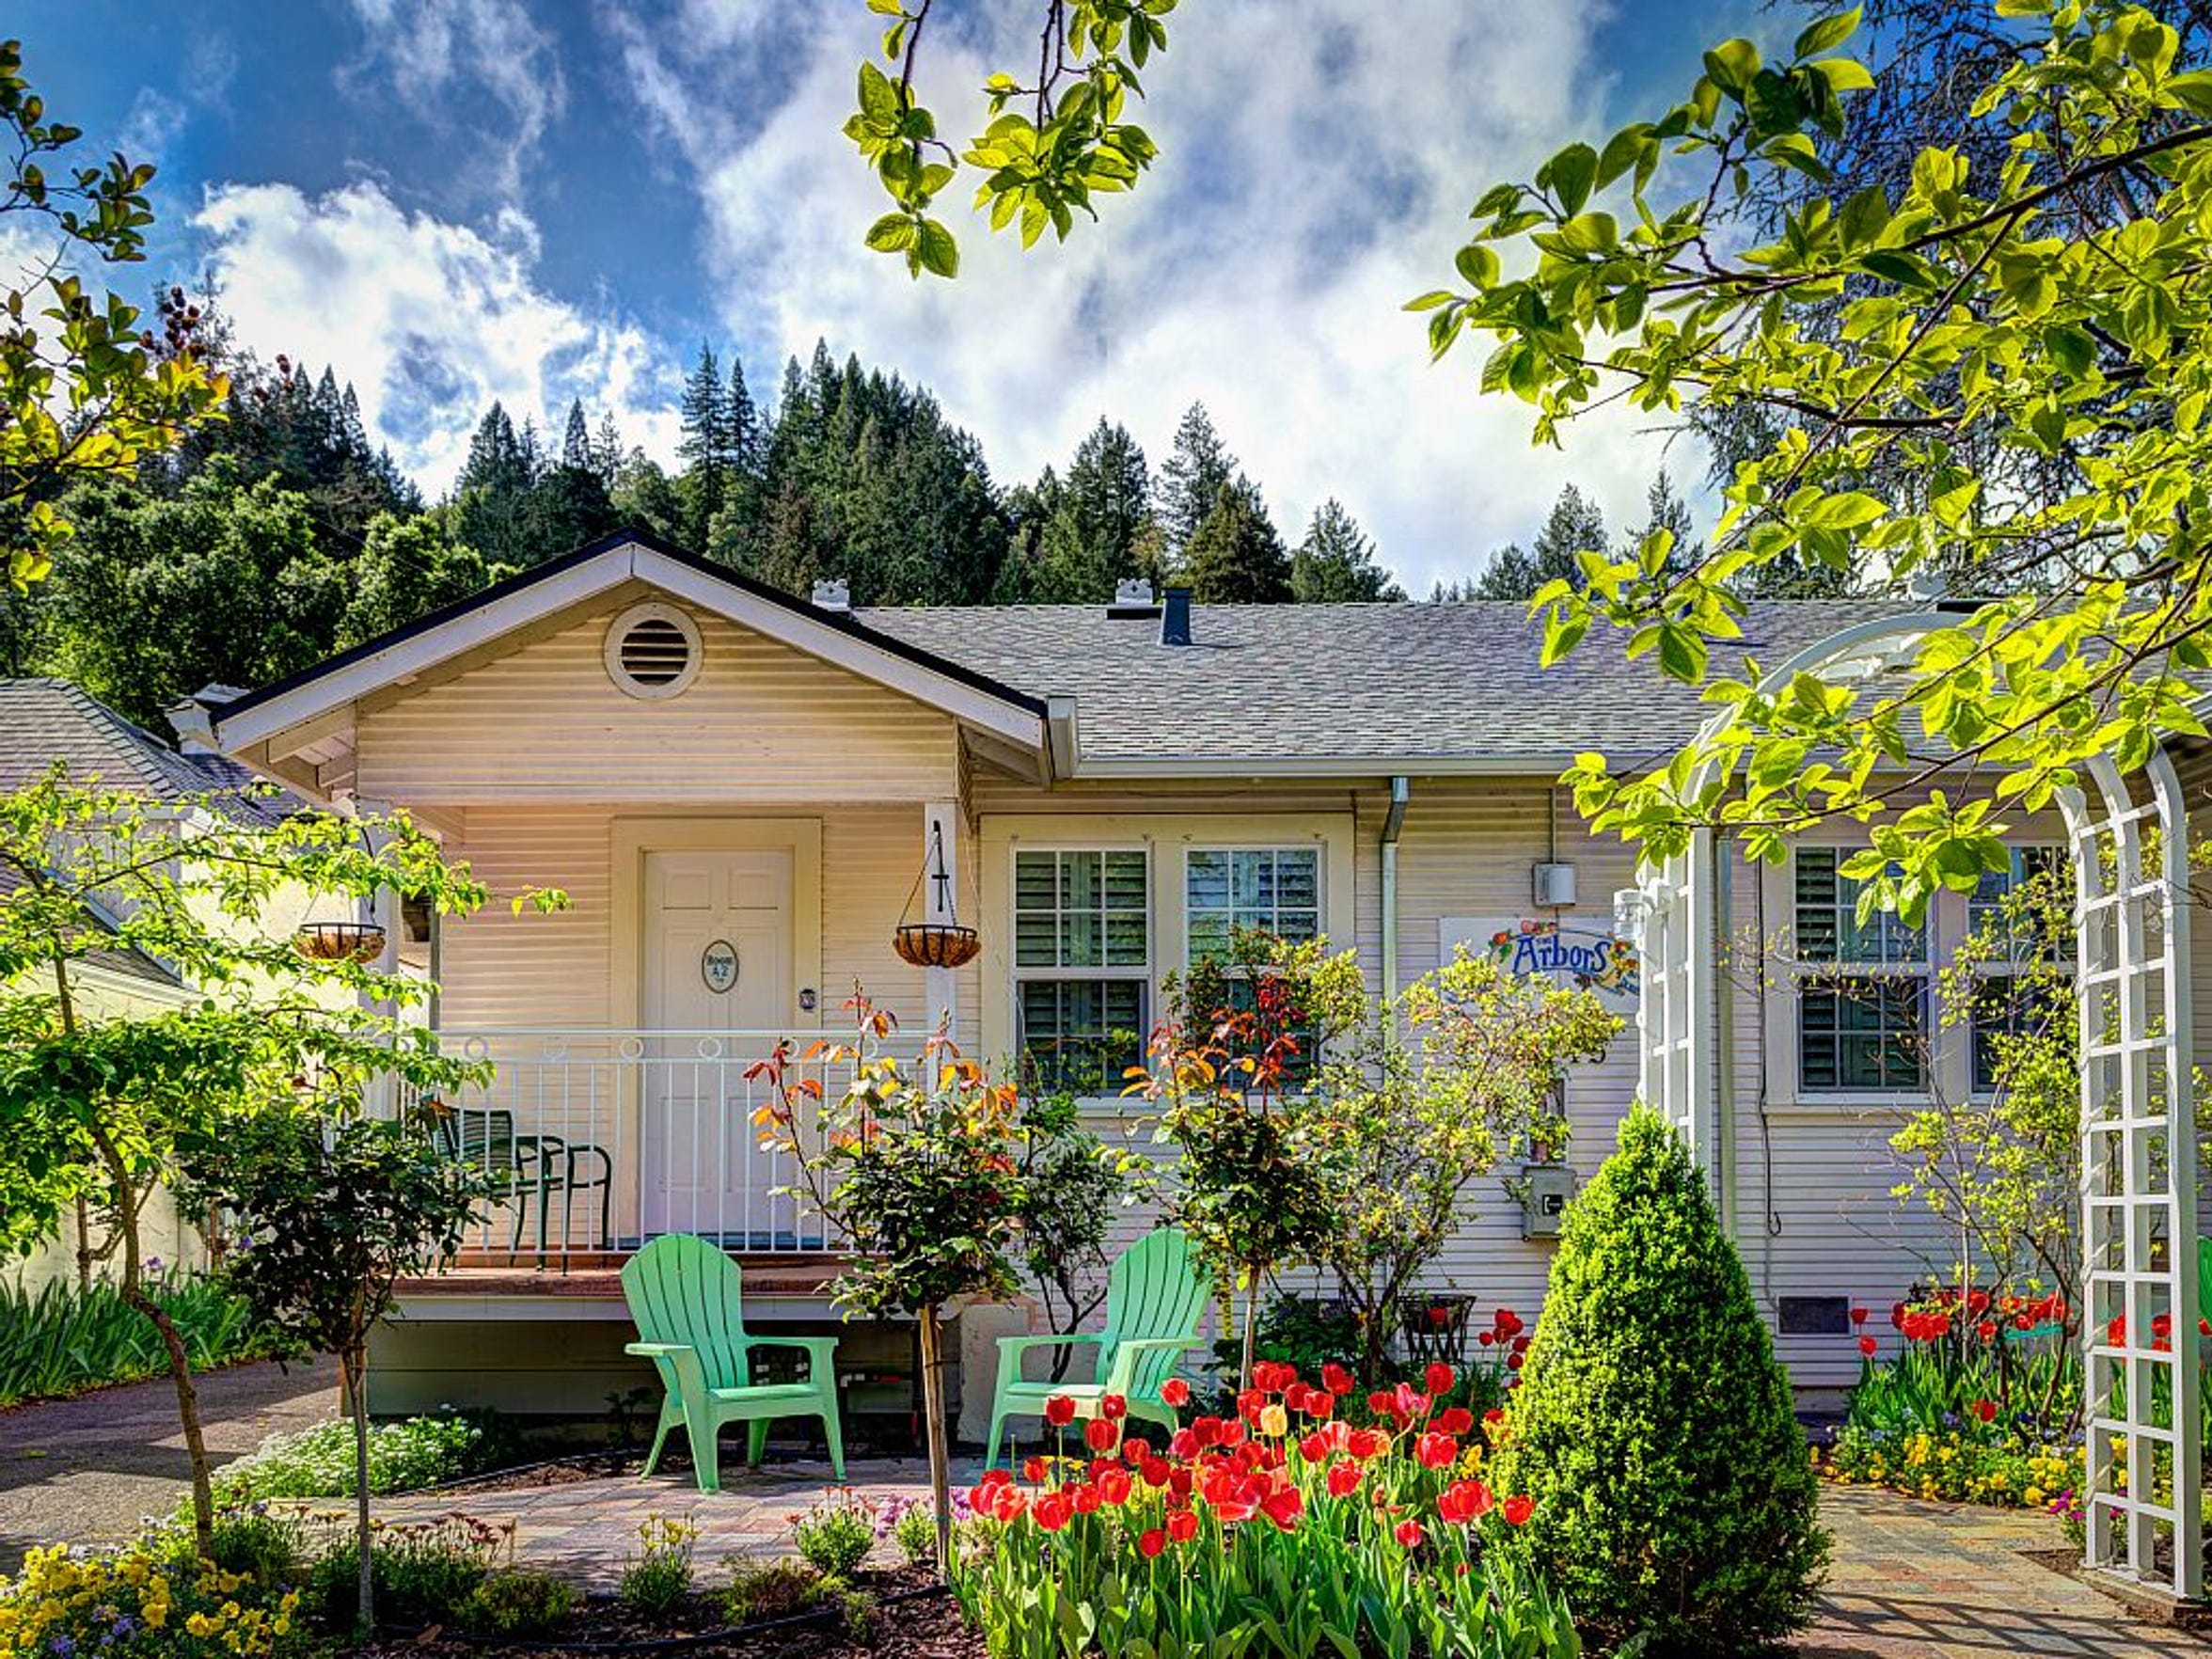 Calistoga Arbors Cottages boast comfy beds, a kitchenette and outdoor garden, and are within walking distance of downtown Calistoga — perfect for those who plan to sip the days away.